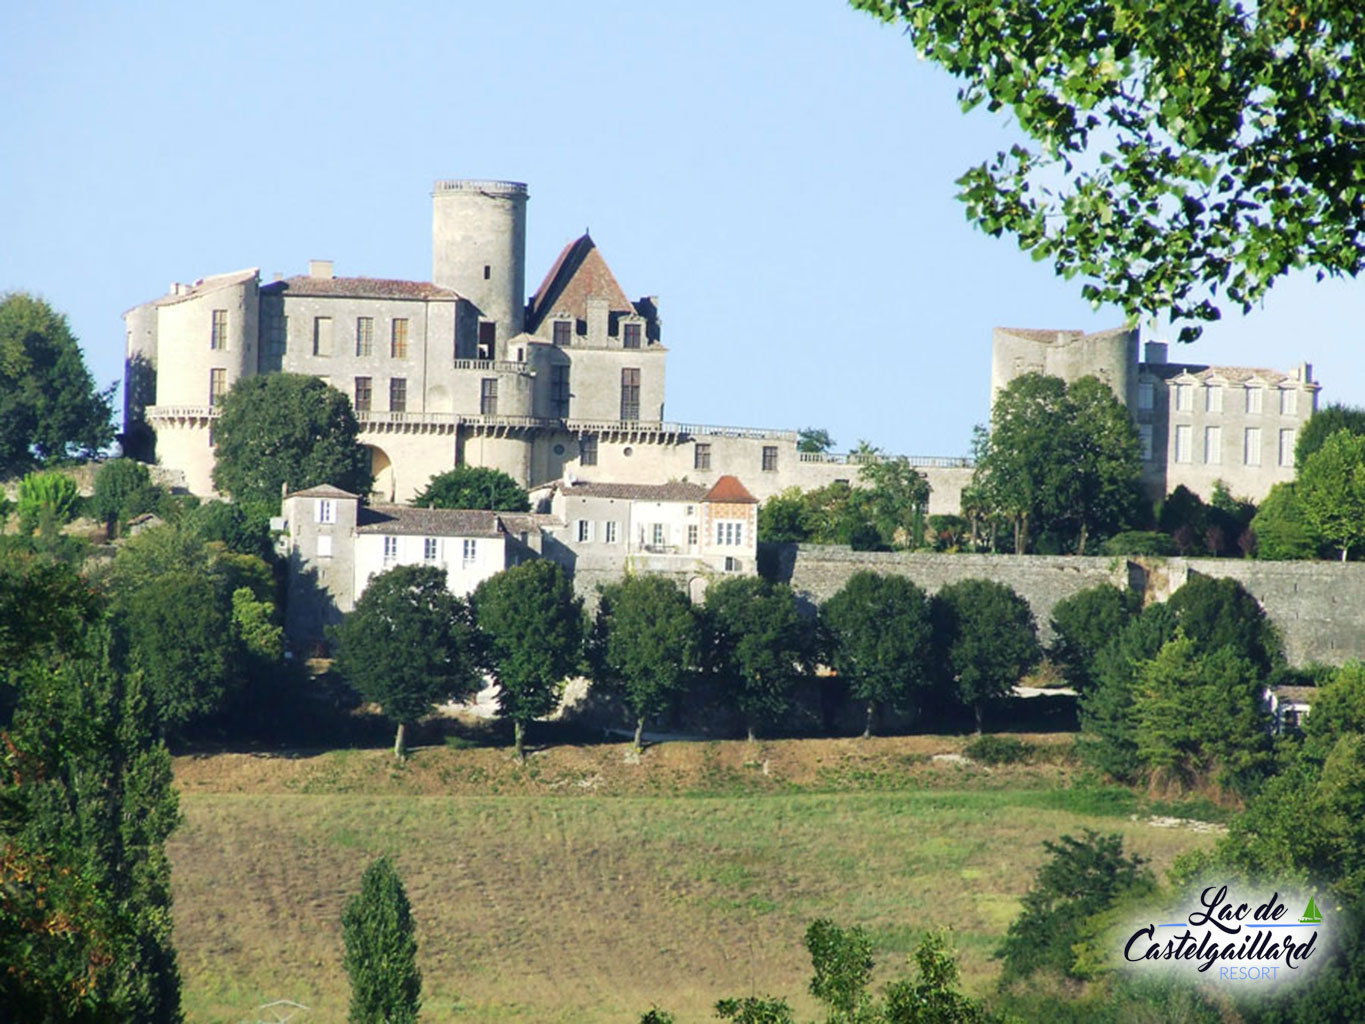 chateauview_23715099393_o